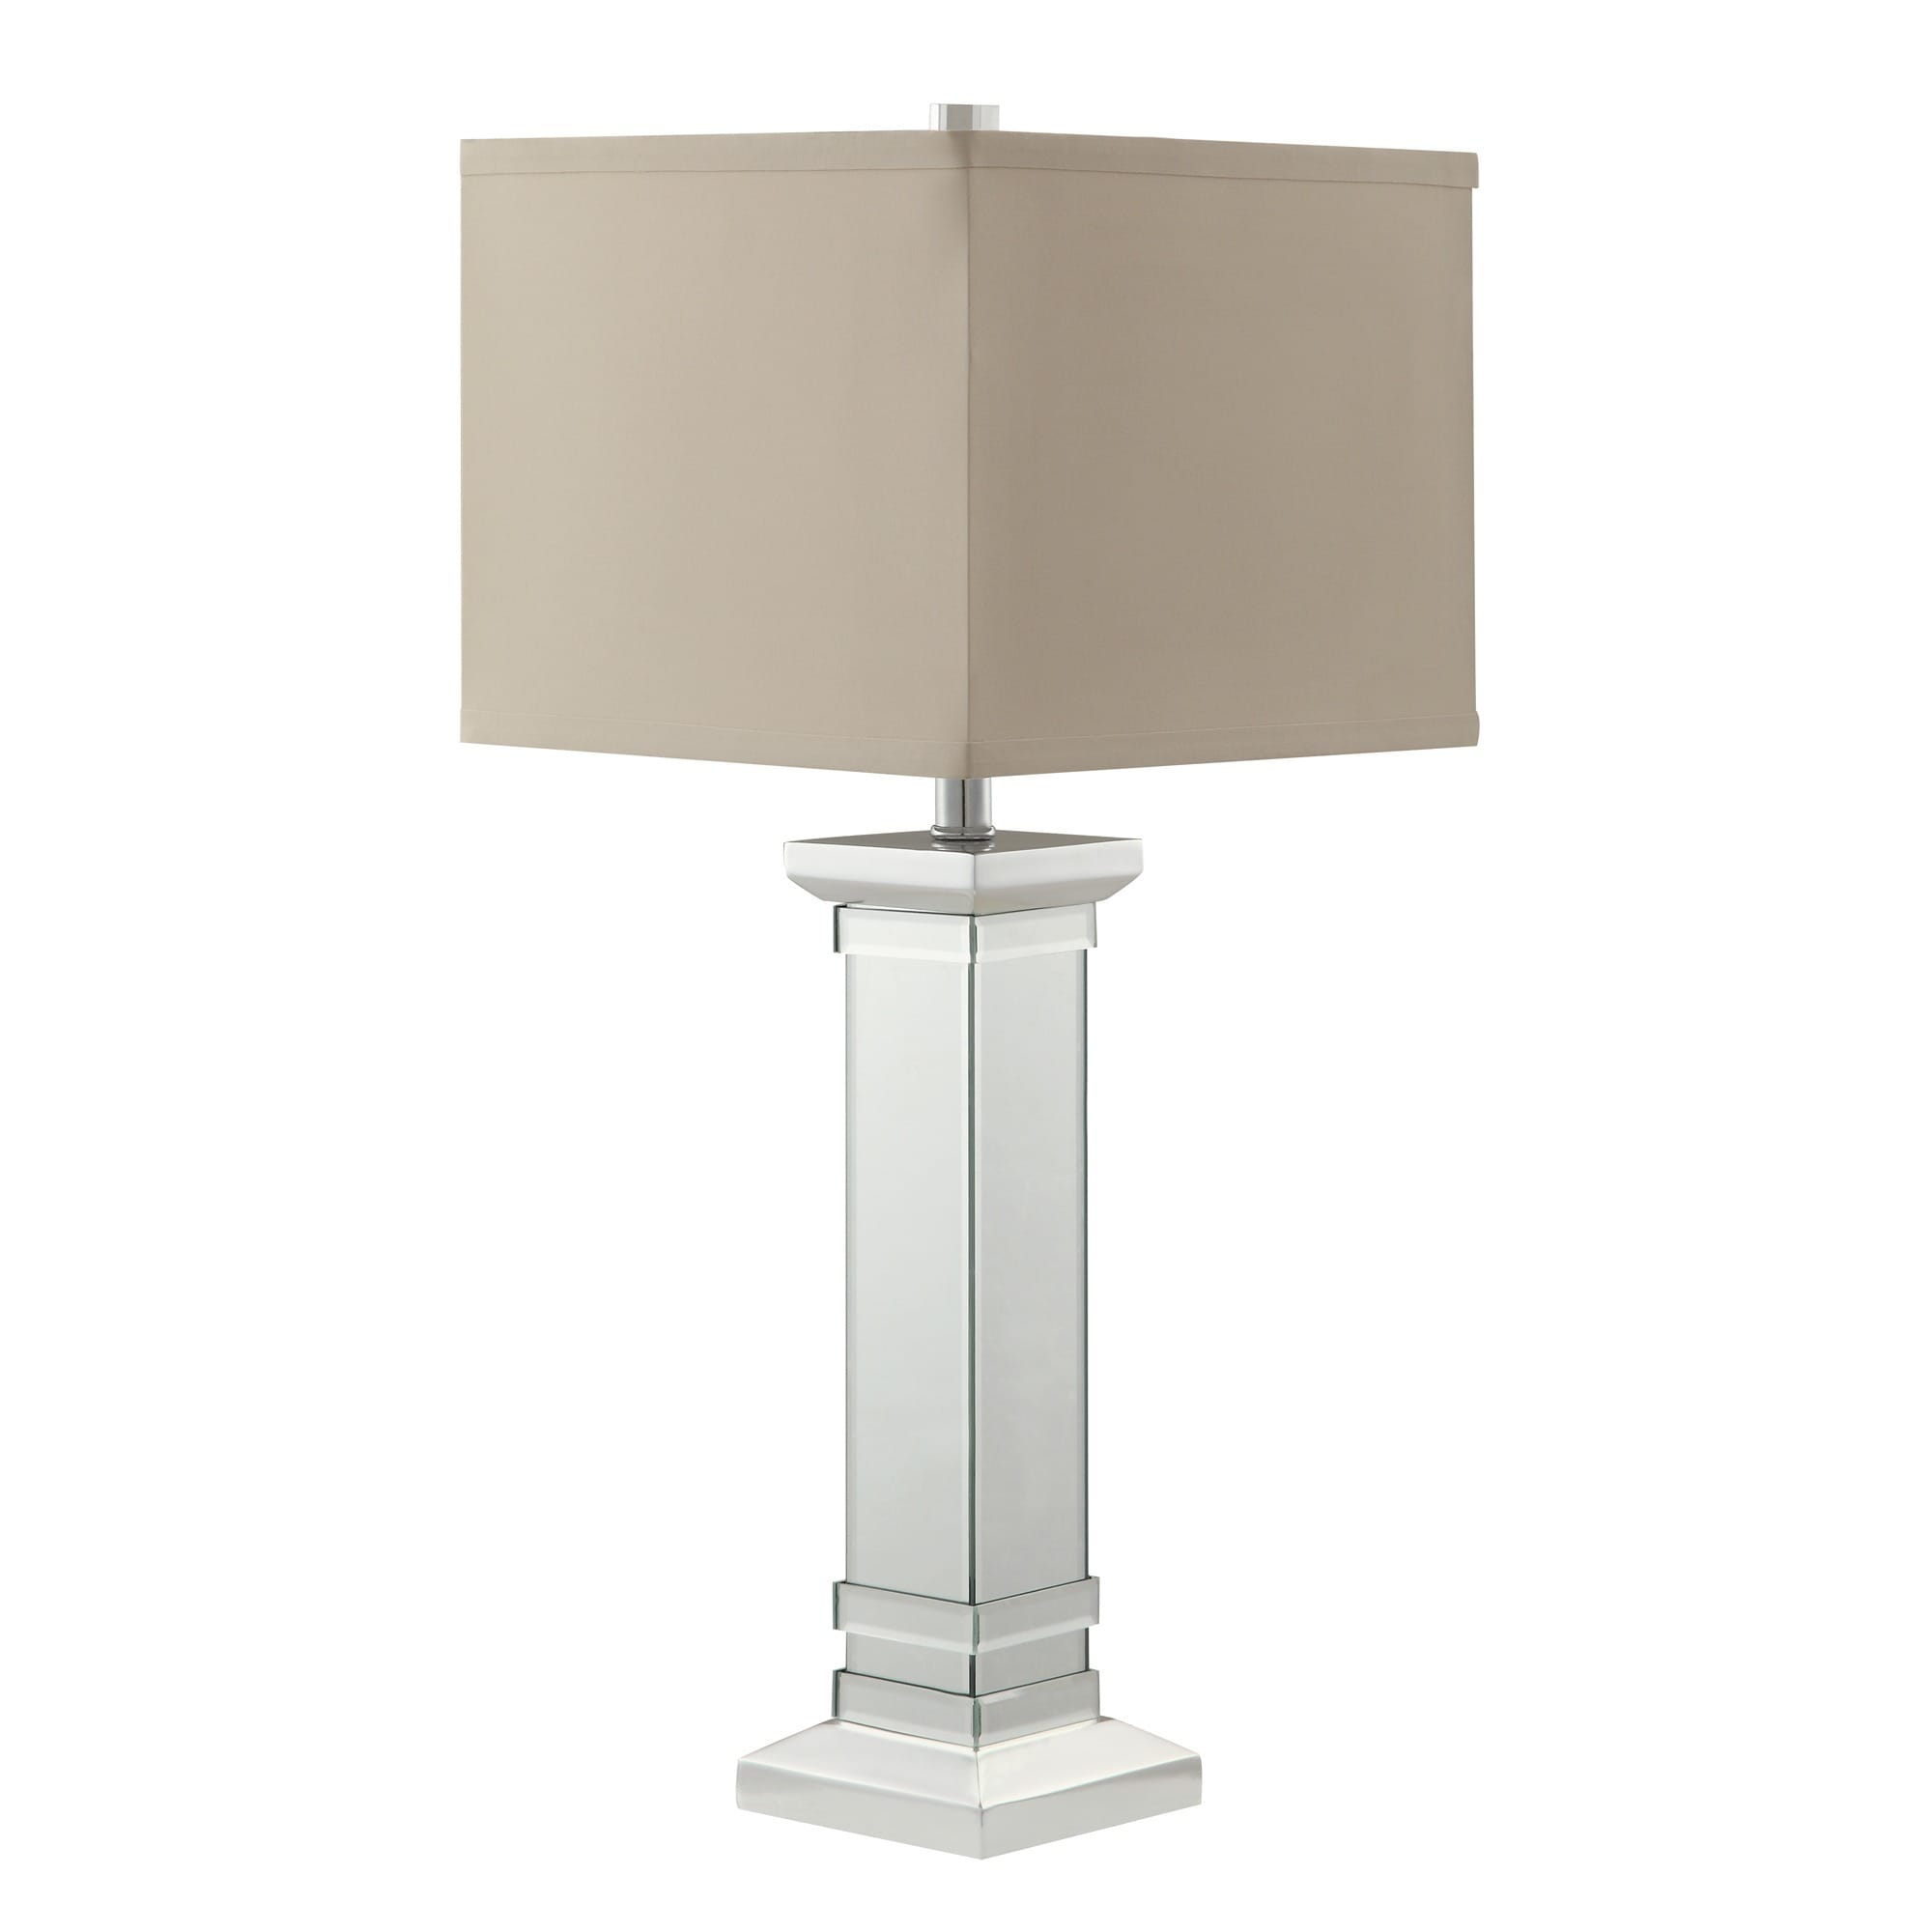 Felton 3-way Crystal Mirror Base 1-light Accent Table Lamp by iNSPIRE Q  Bold - Free Shipping Today - Overstock.com - 15772681